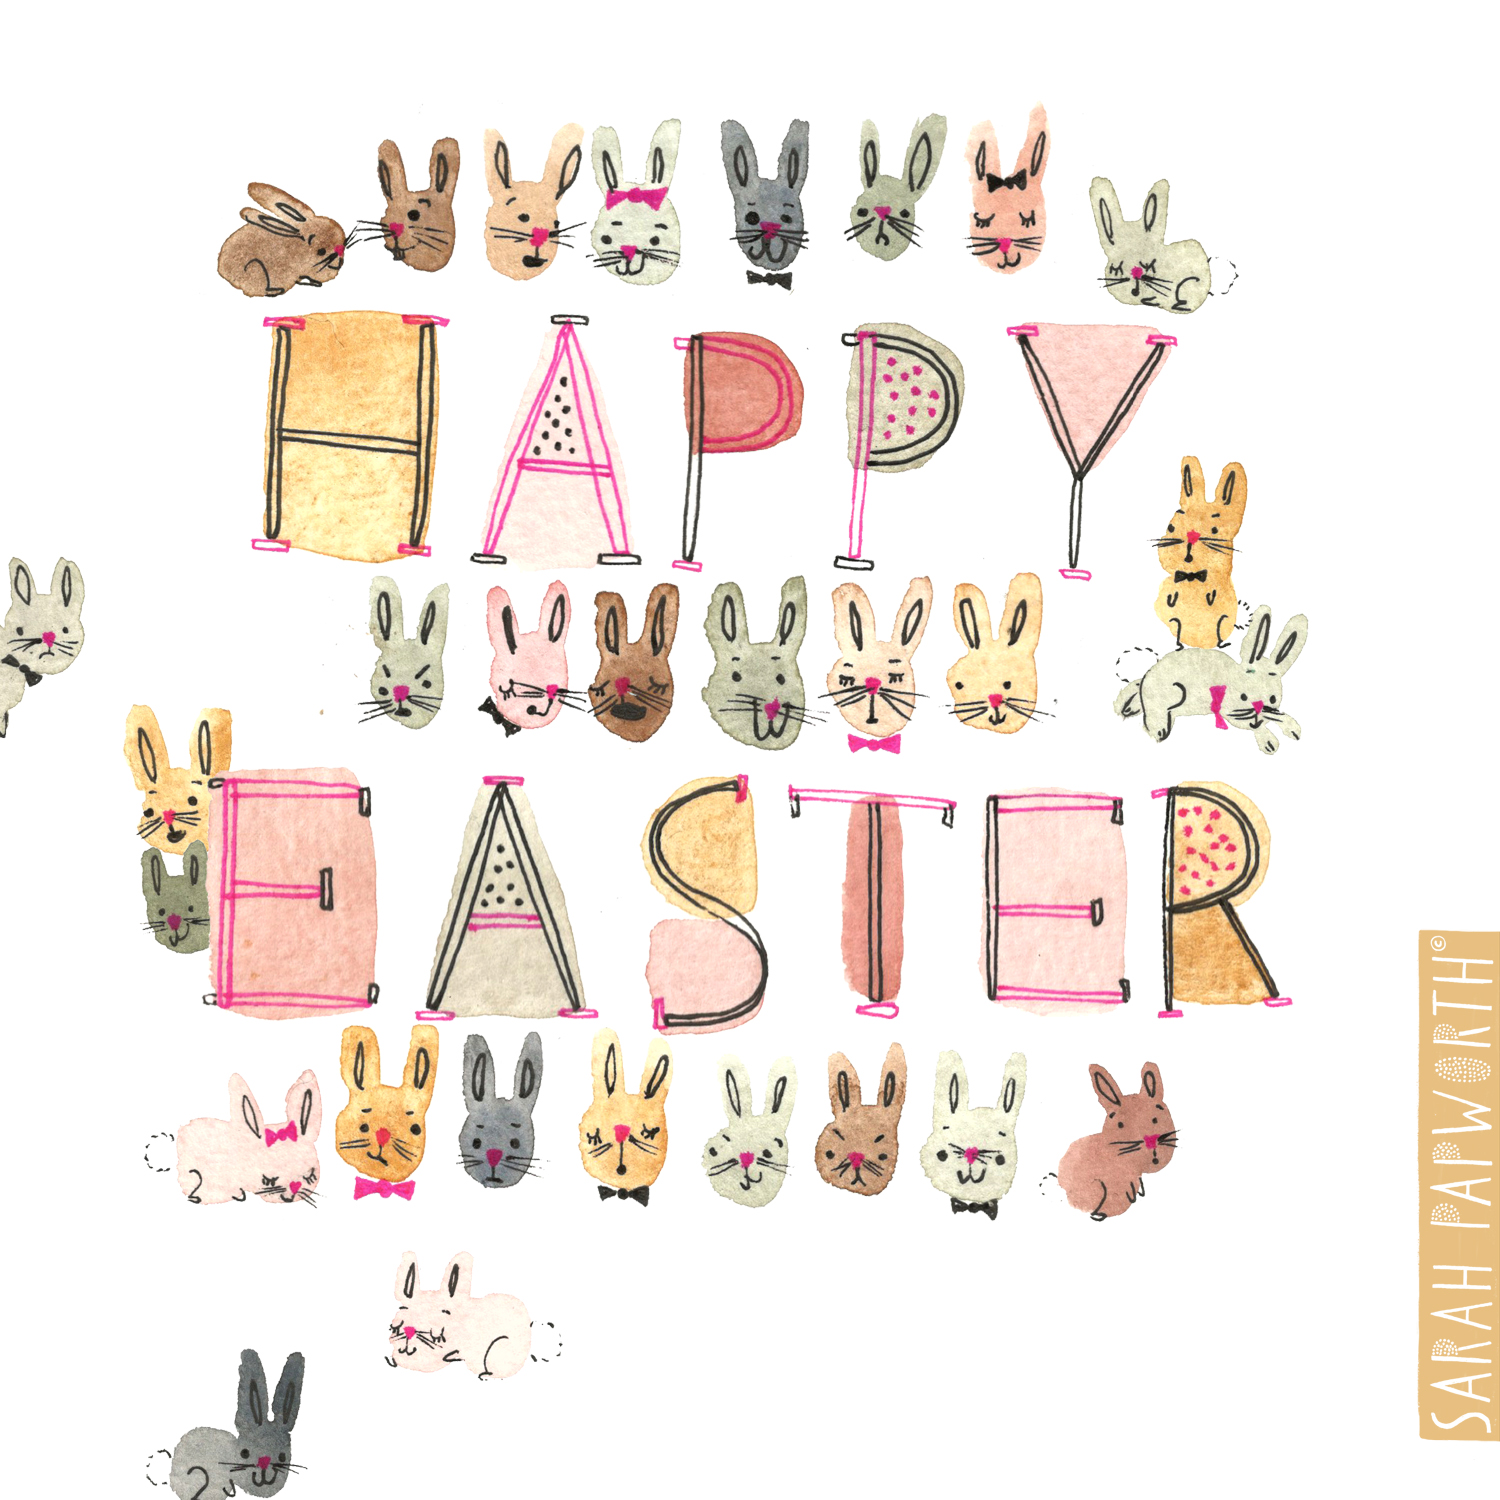 watercolour bunnies easter card design by sarah papworth surface pattern designer.jpg